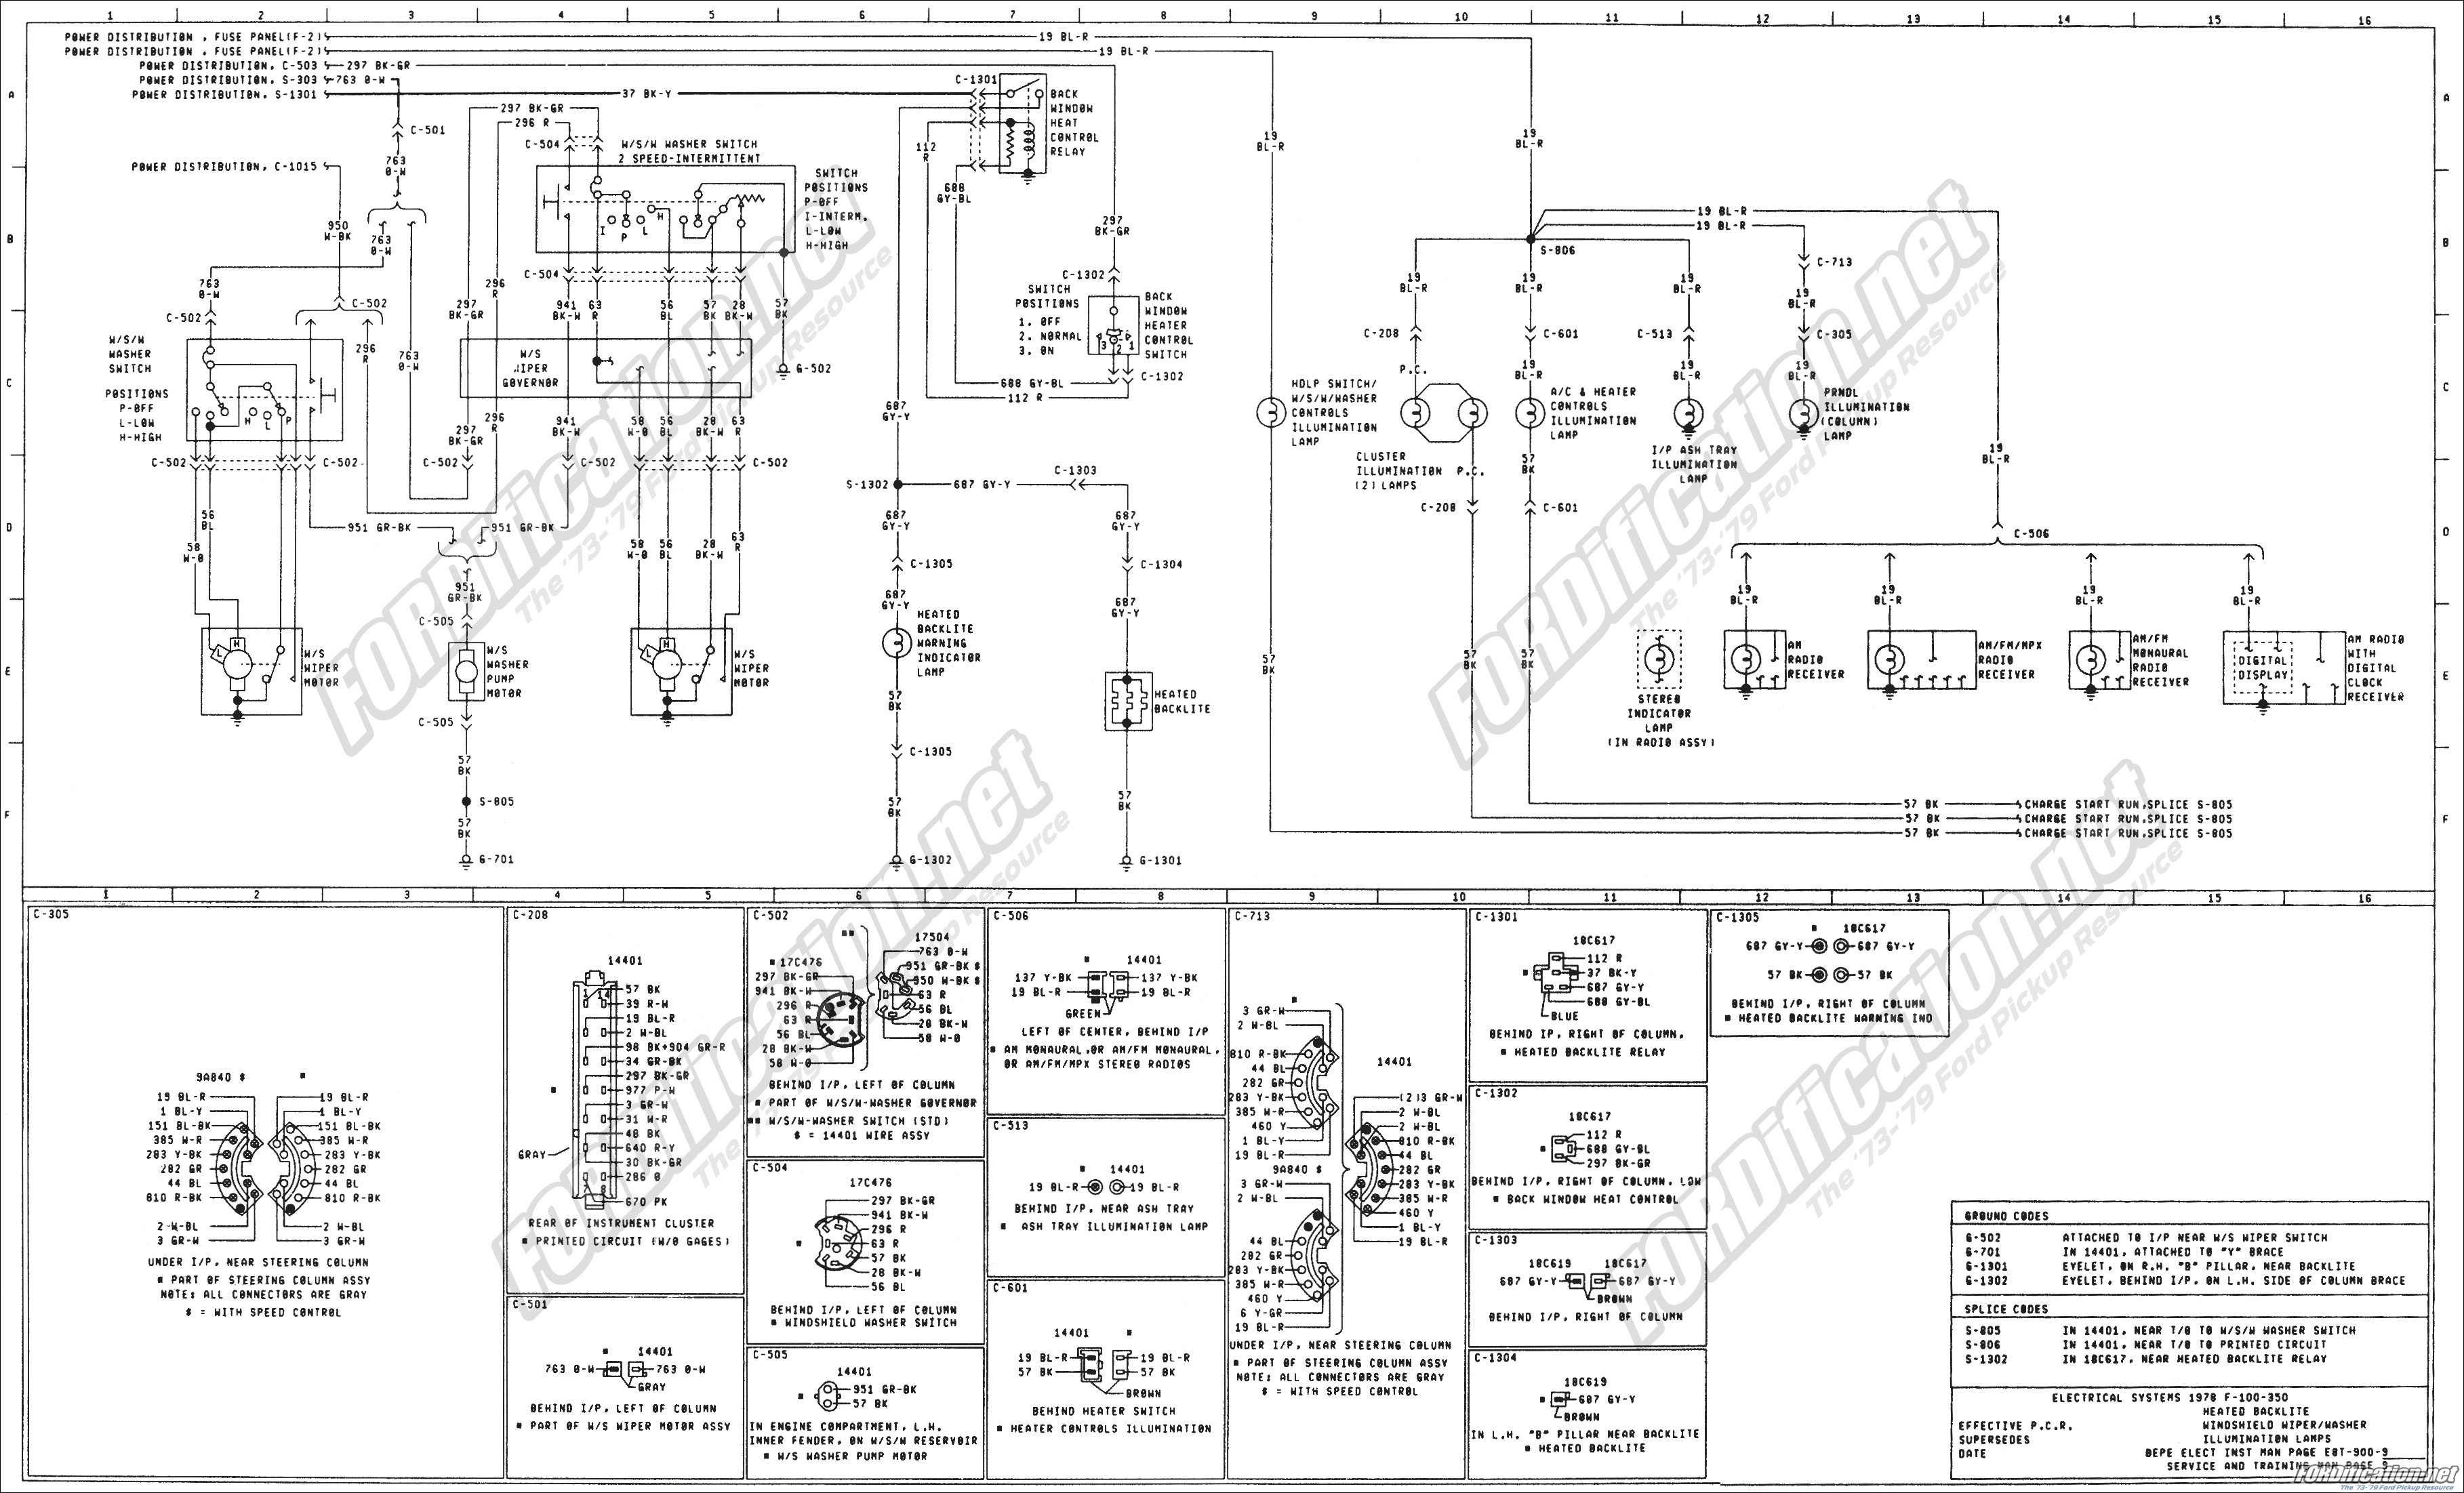 79 Ford Ignition Wiring Diagram - Wiring Diagram Networks